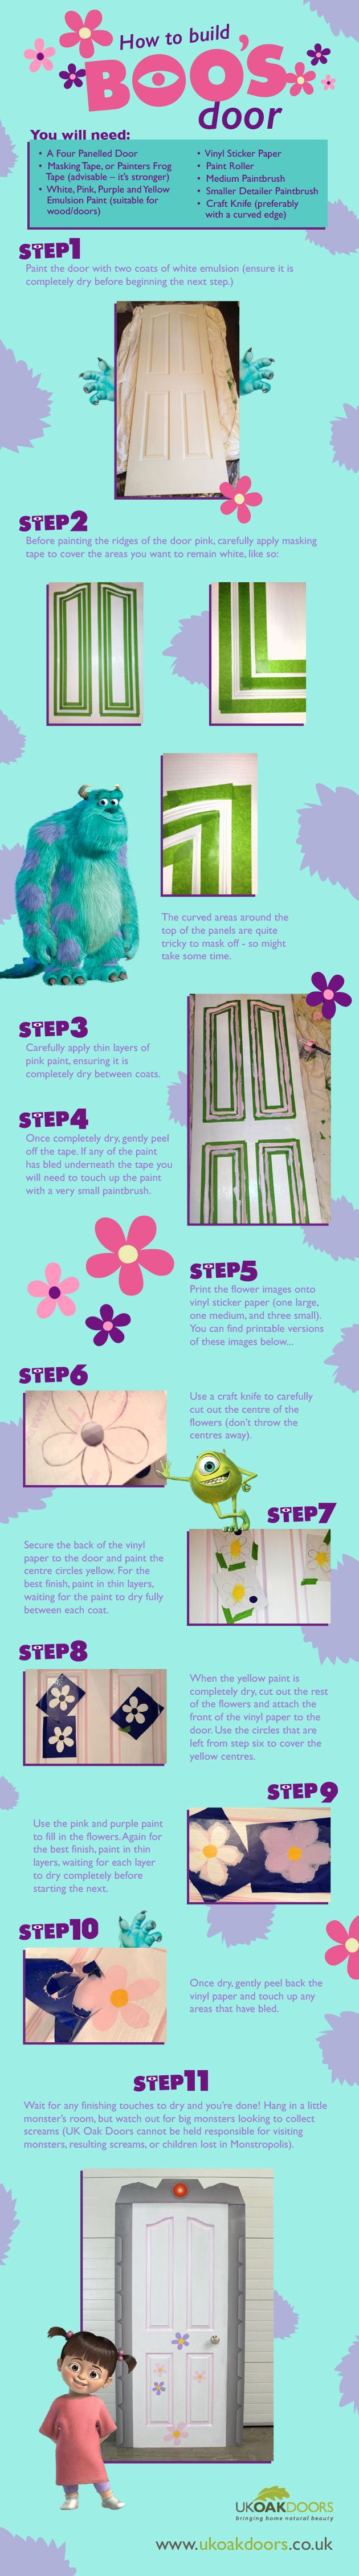 How to Build Boo's Door - Monsters Inc